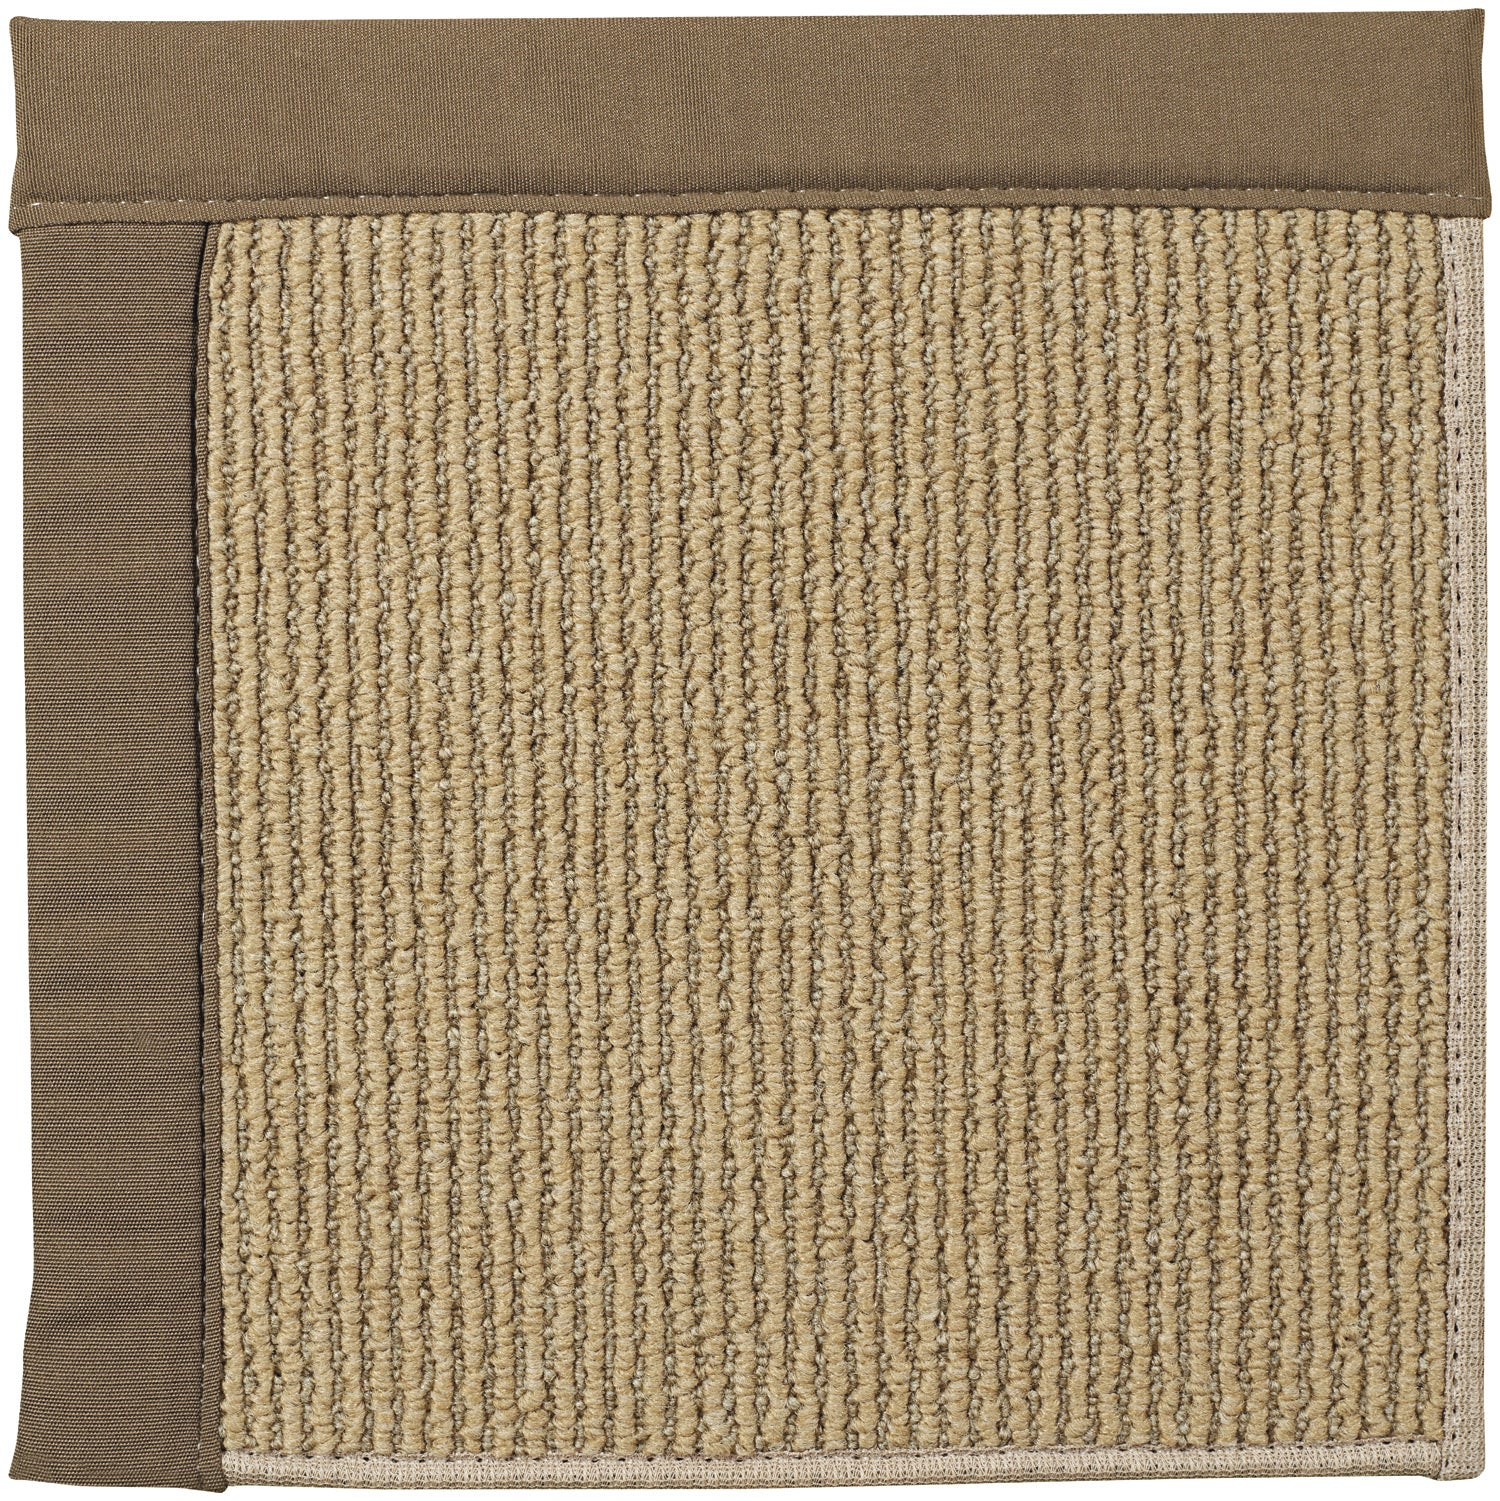 Capel Beachfront Shore 2036 Cafe 747 Area Rug main image